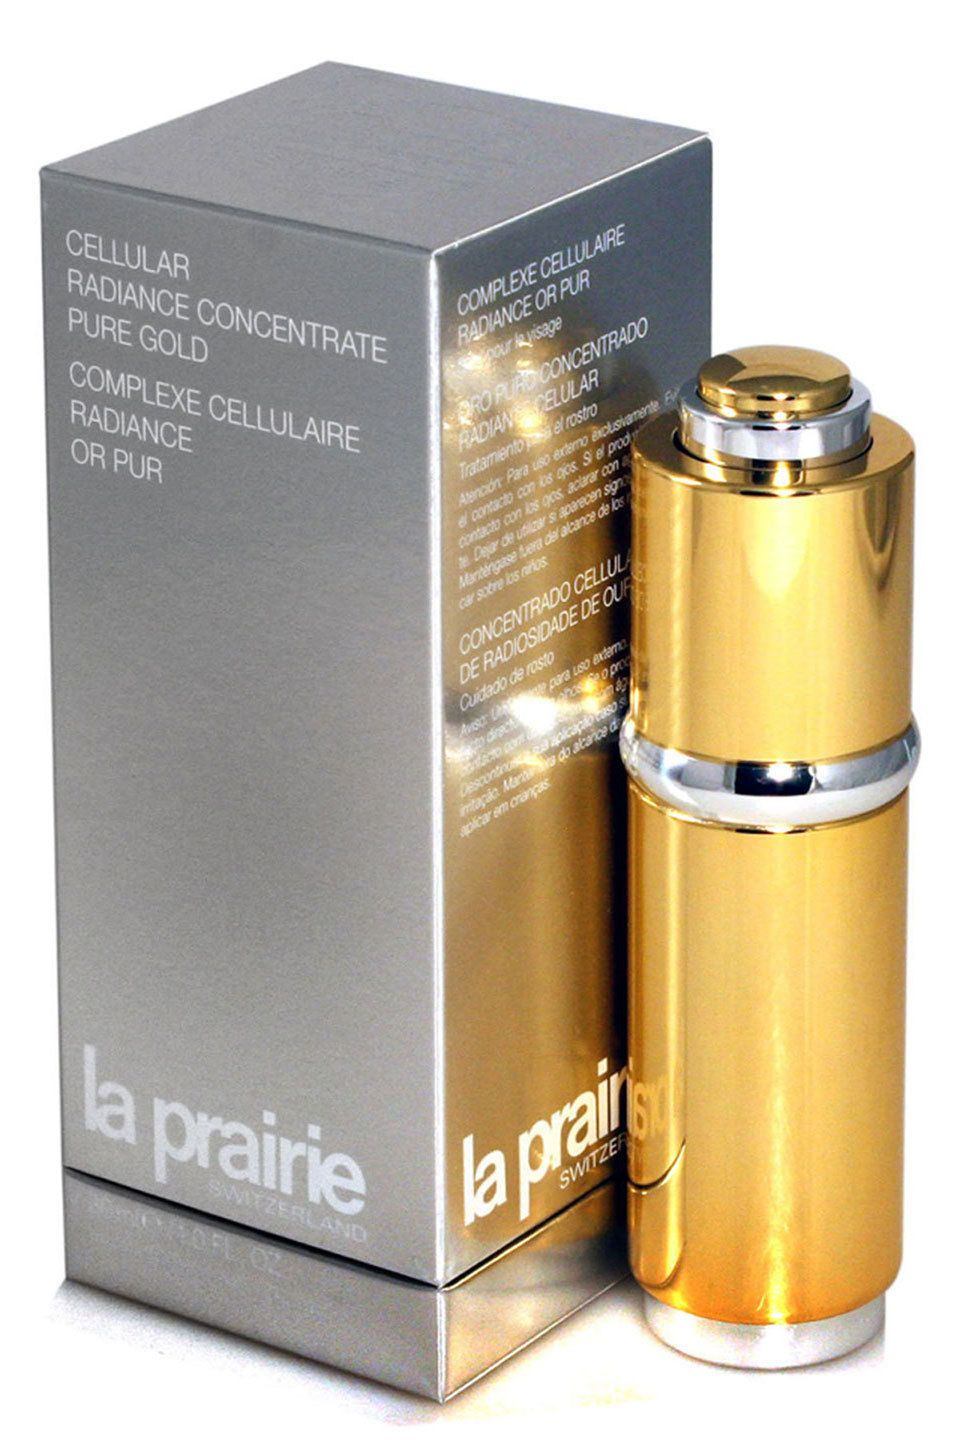 La Prairie Cellular Radiance Concentrate Pure Gold Pure Products Luxury Beauty Packaging Pure Gold